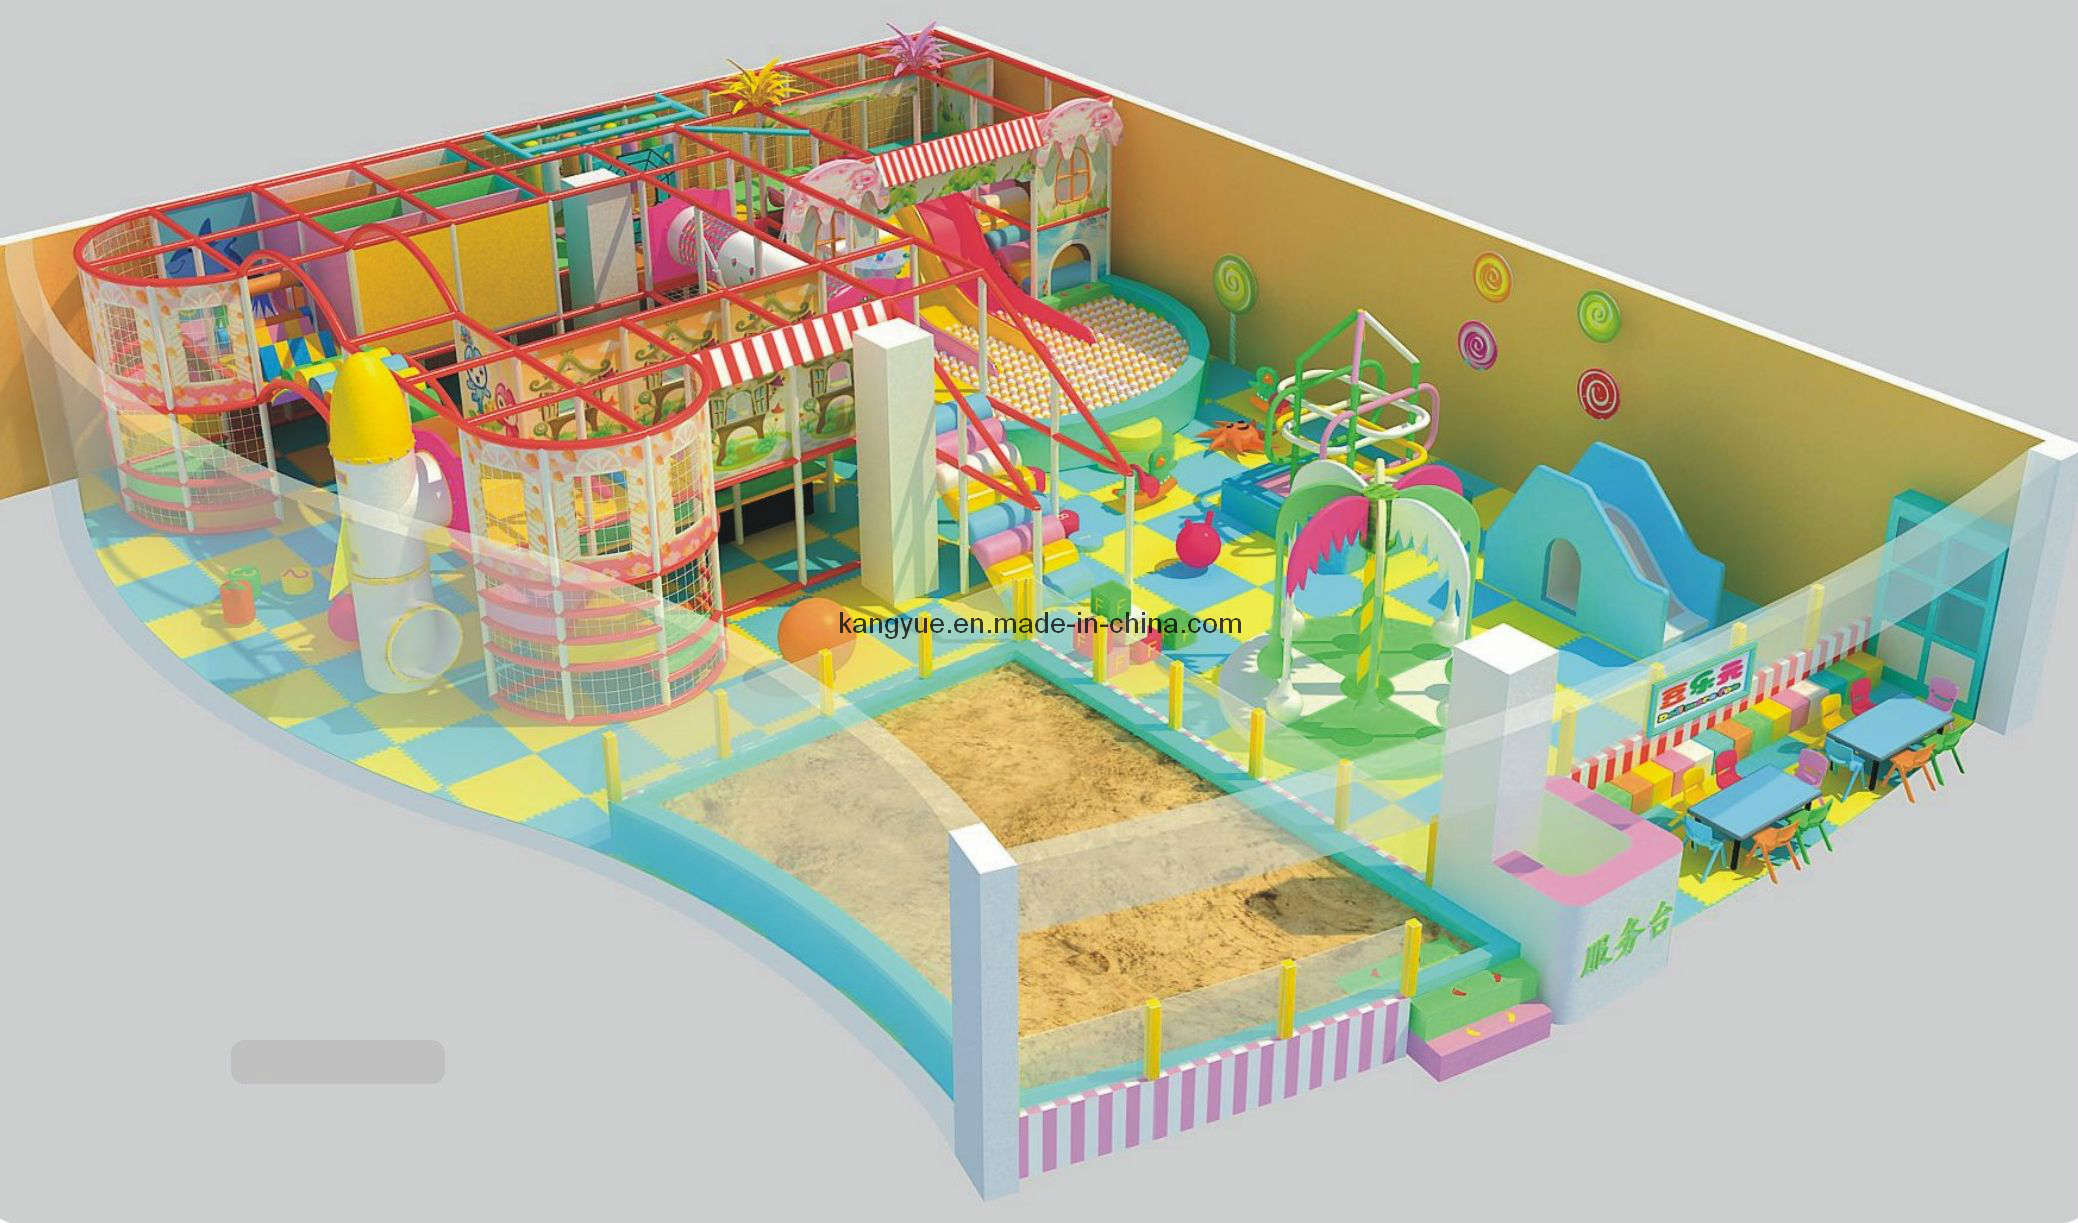 China indoor play equipment kyv 203 2 photos pictures for Indoor play structure prices